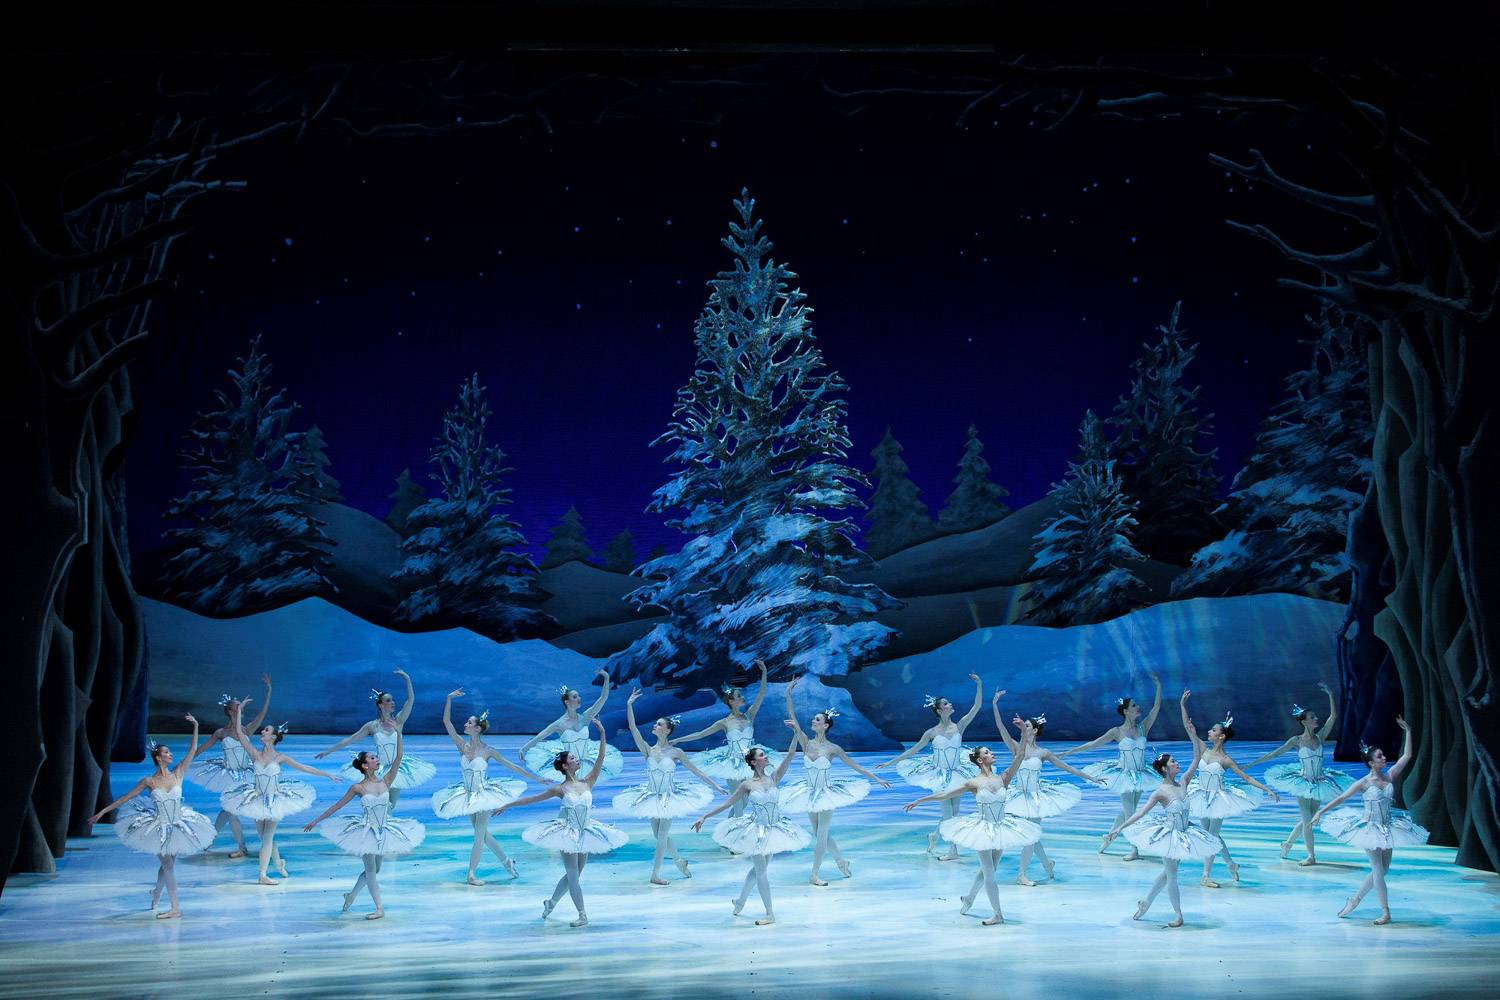 An image of dancers performing The Nutcracker at the London Coliseum.